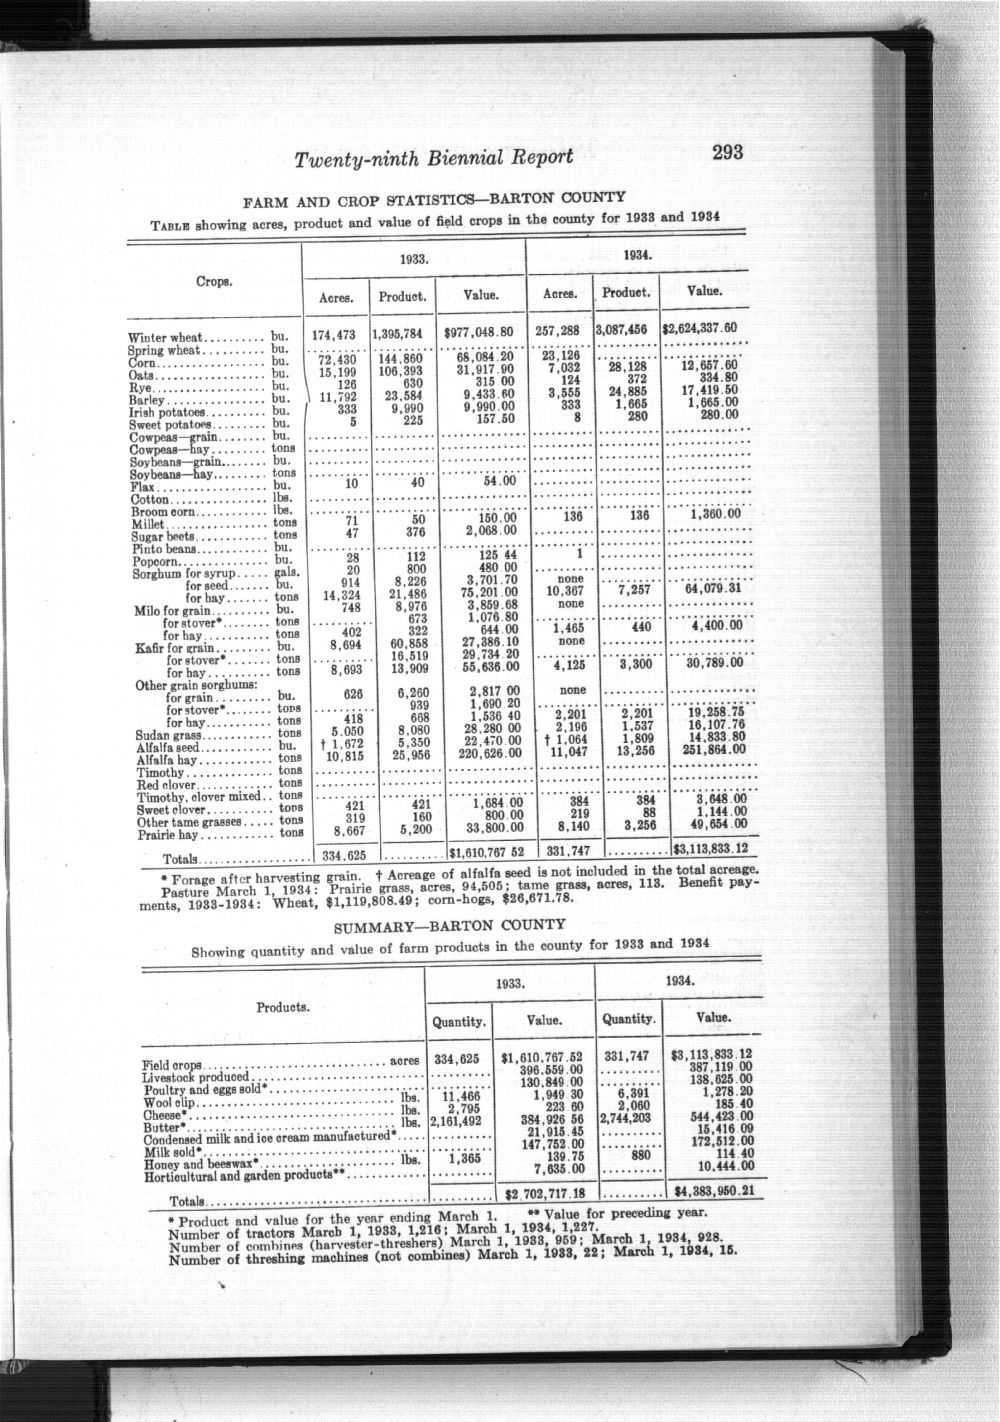 Twenty-ninth Biennial Report, Statistics by county showing population, acreage, production, and livestock, 1933-1934 - 293